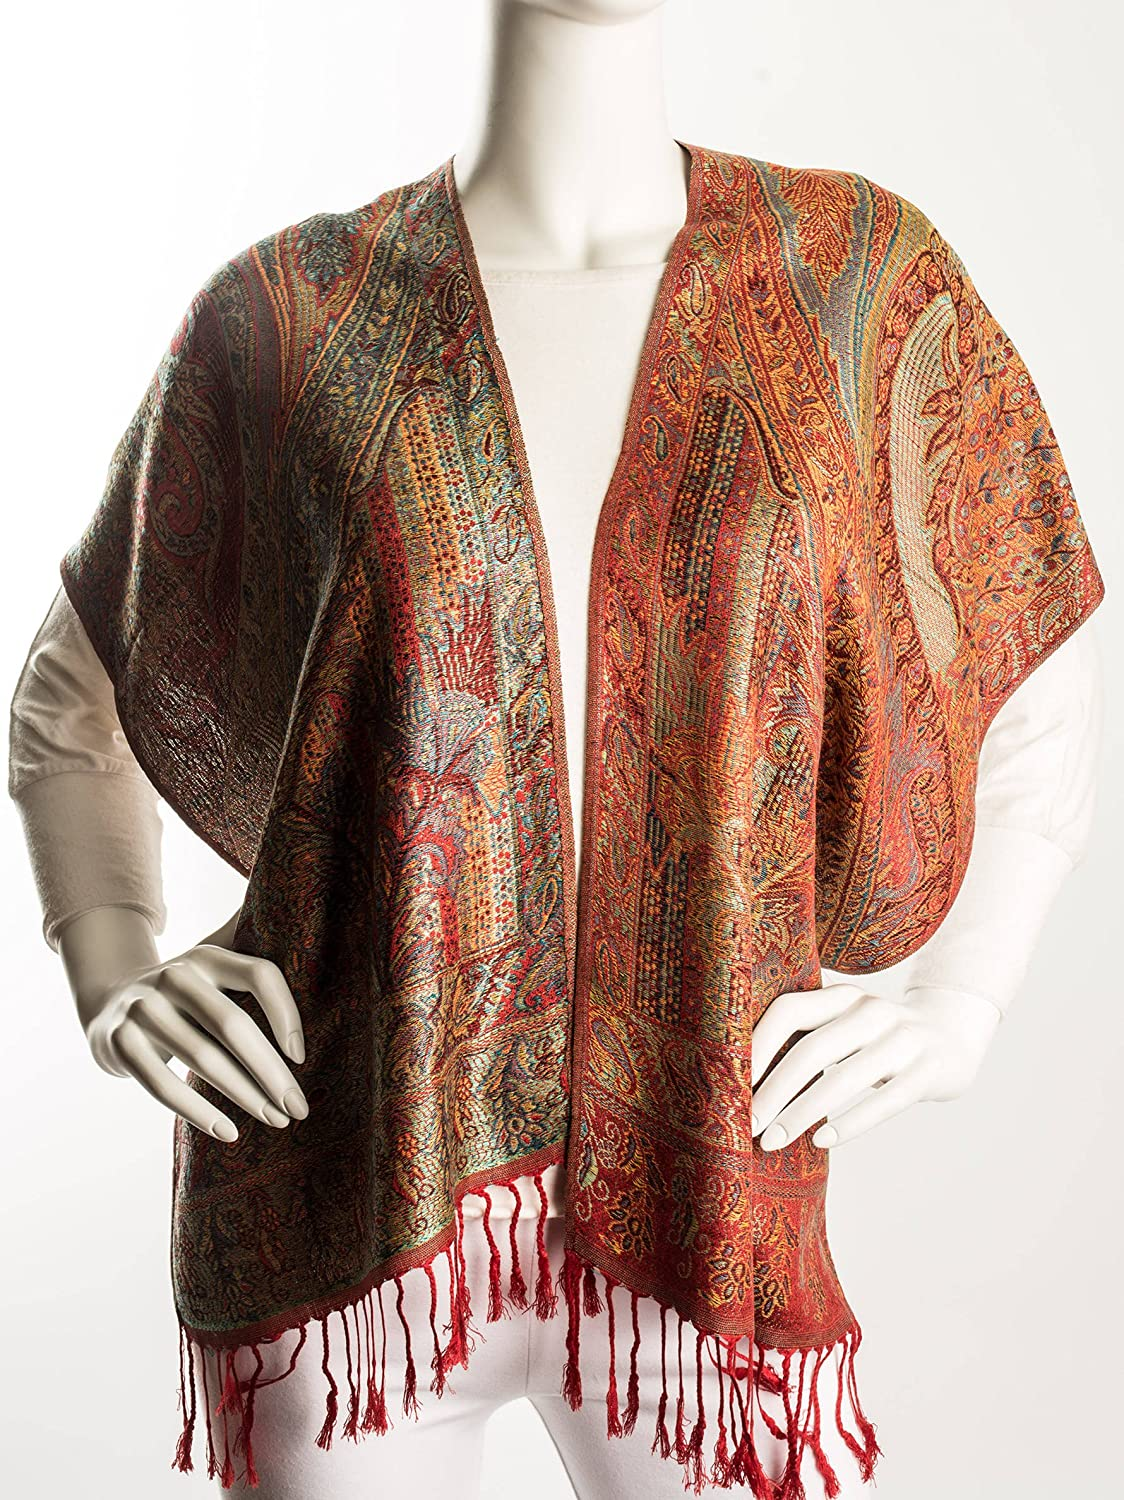 70s Jackets, Furs, Vests, Ponchos Bohomonde Rajana Scarf Pashmina Indian Paisley Traditional Jacquard Scarf $29.95 AT vintagedancer.com